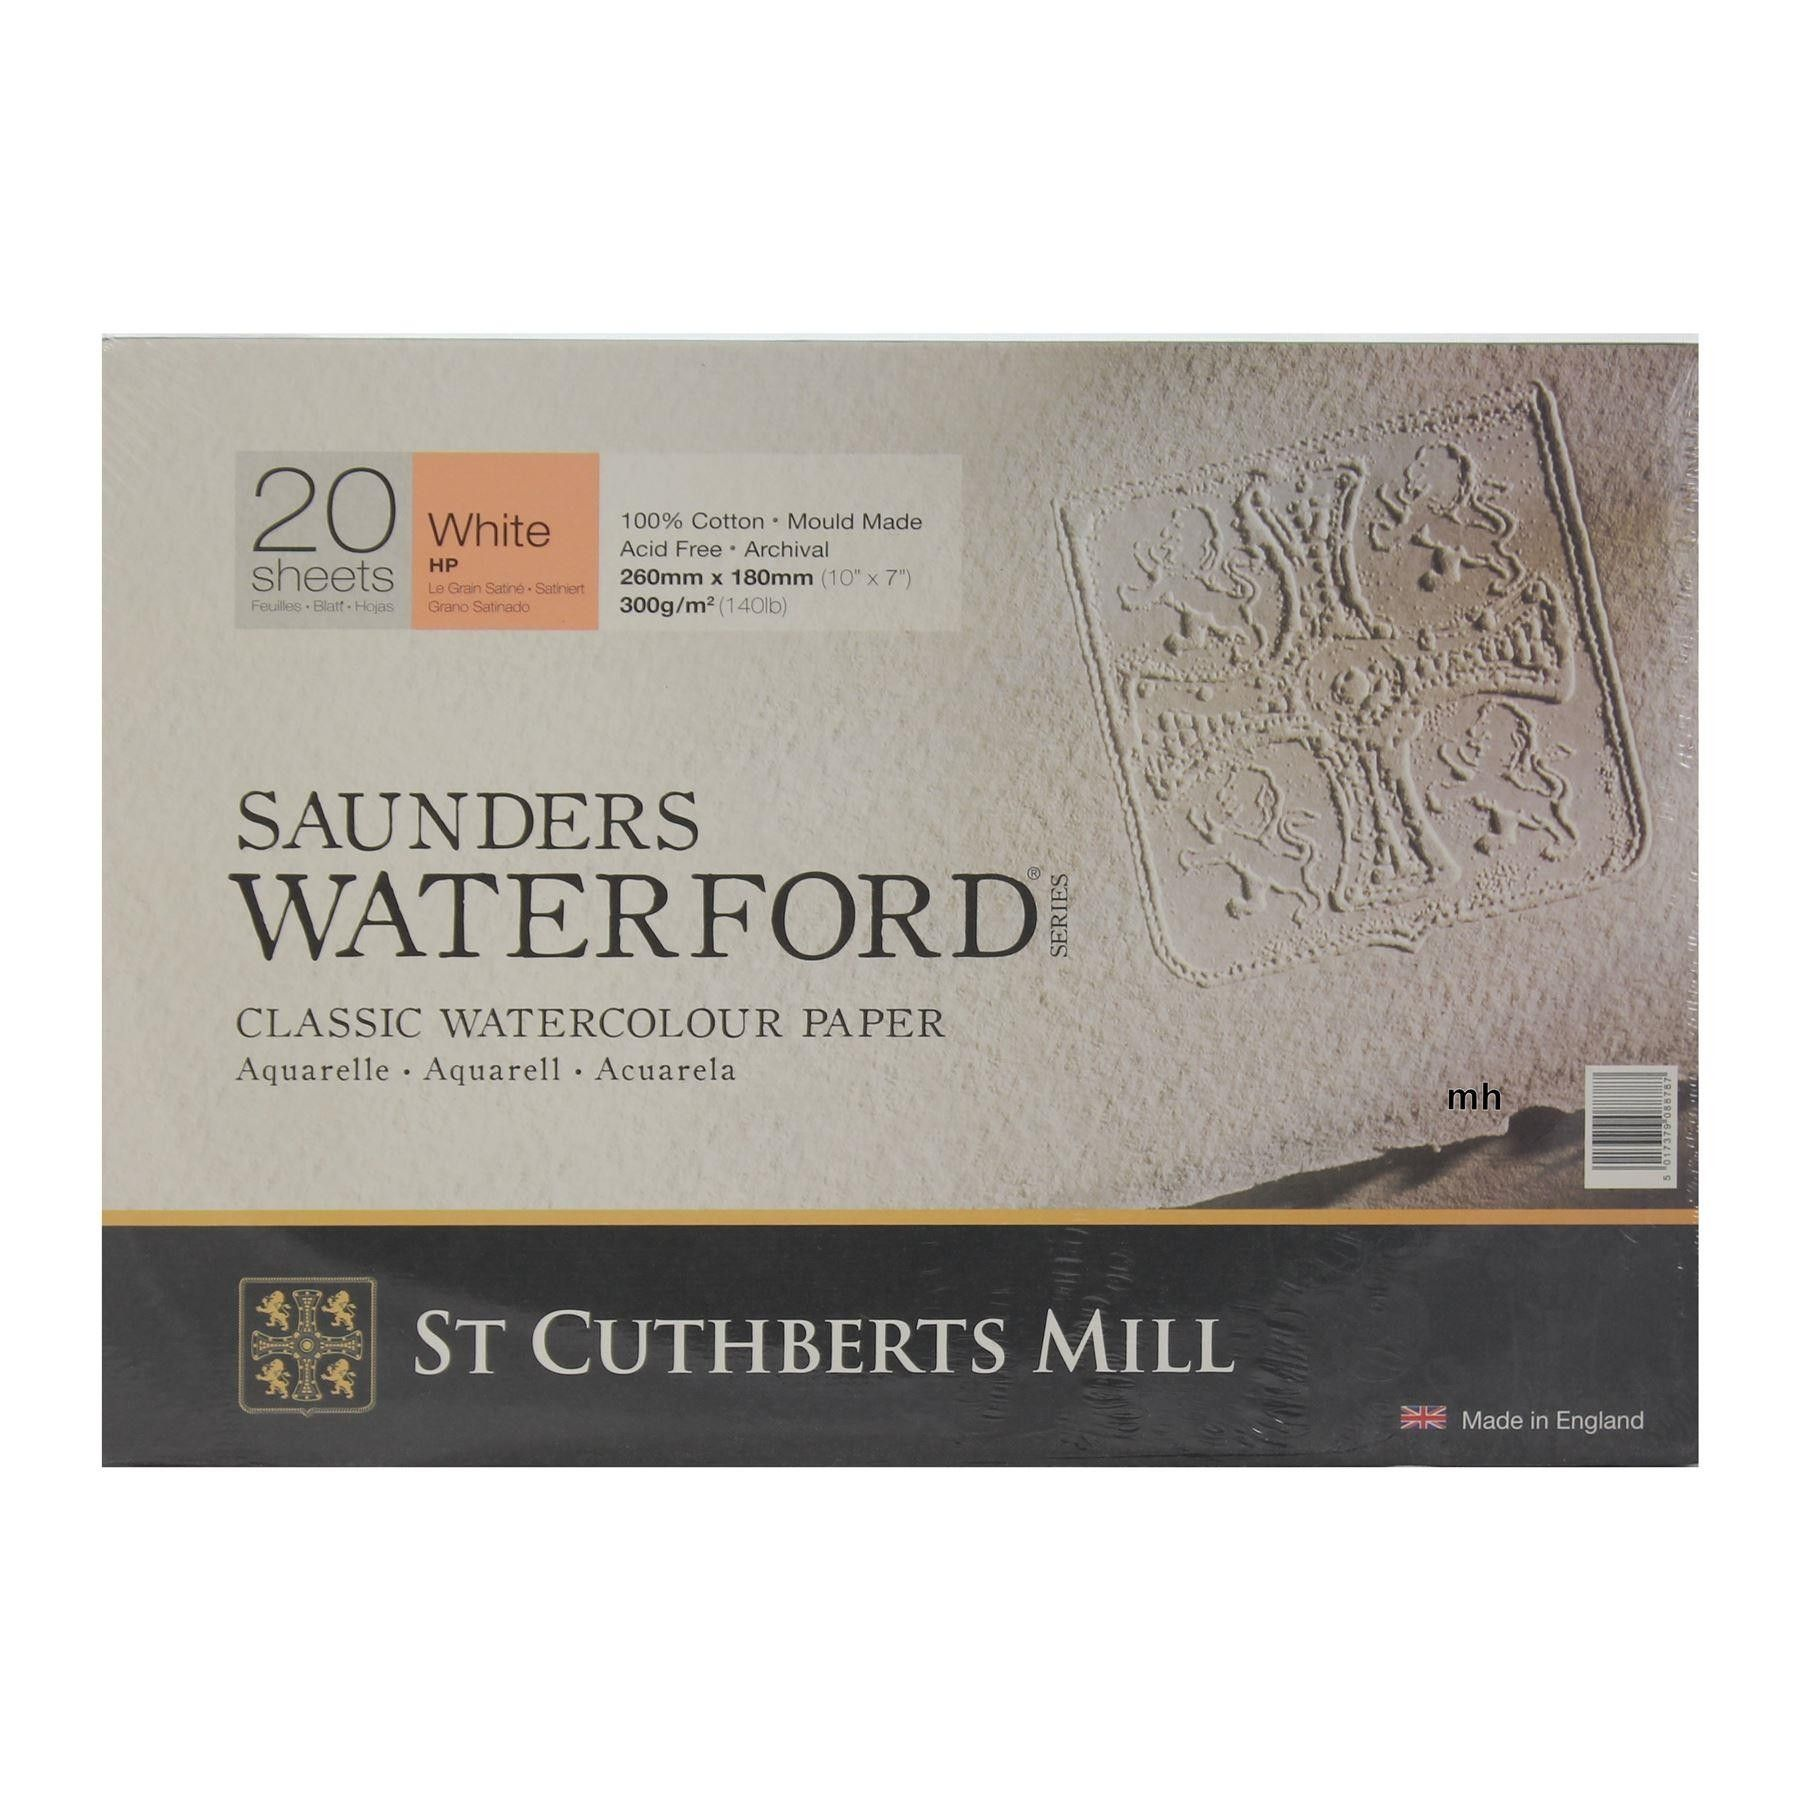 Saunders Waterford Hot Press Classic Watercolour Paper Blocks